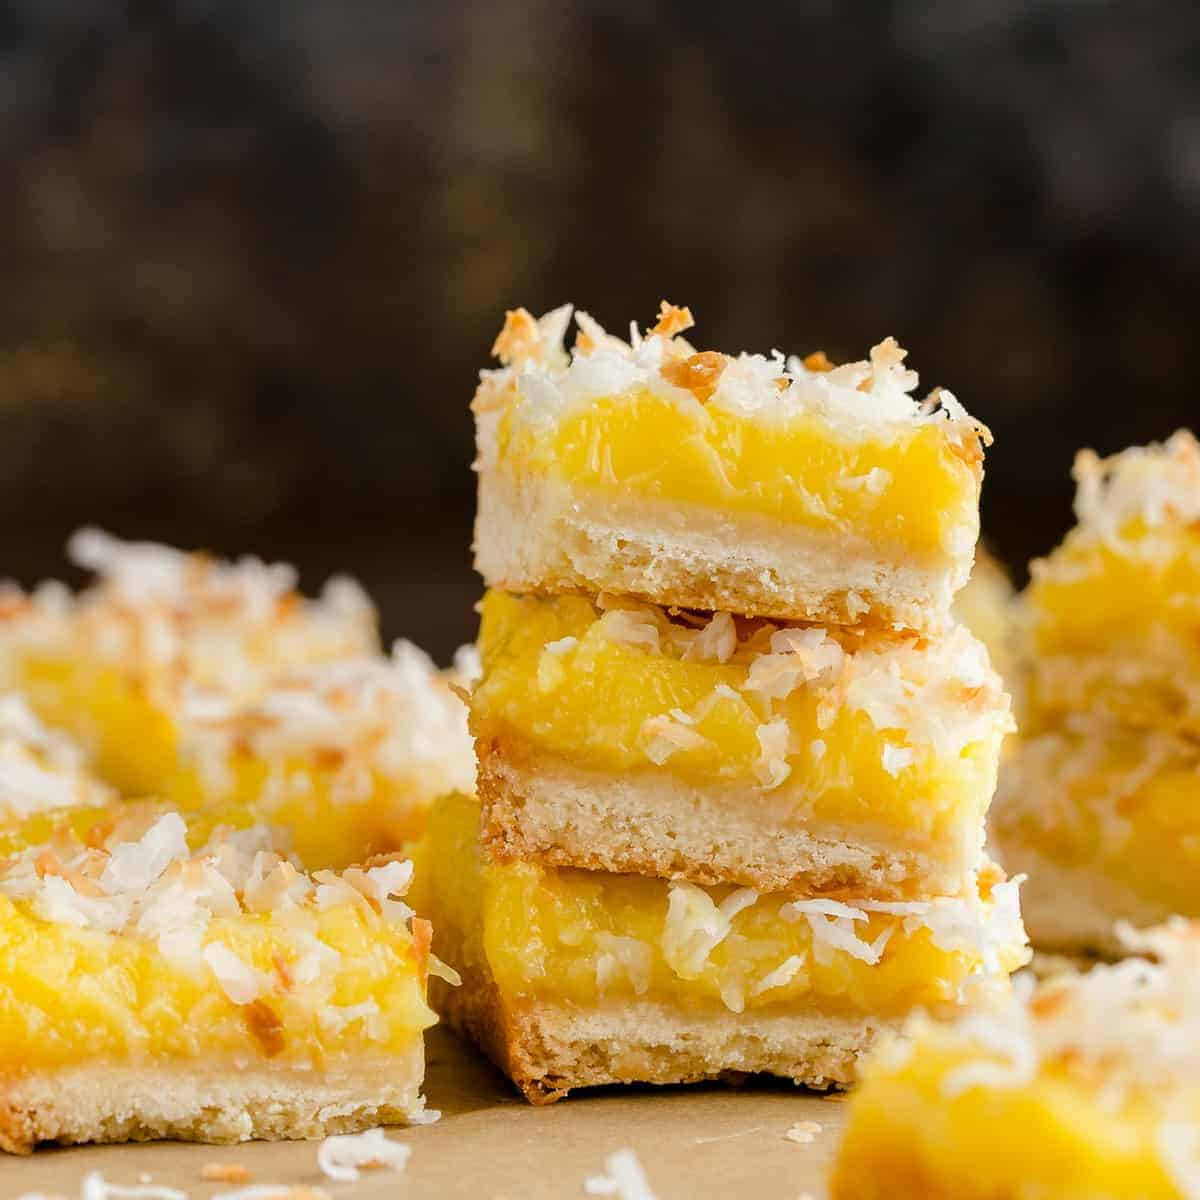 Coconut lemon bars stacked on a table.